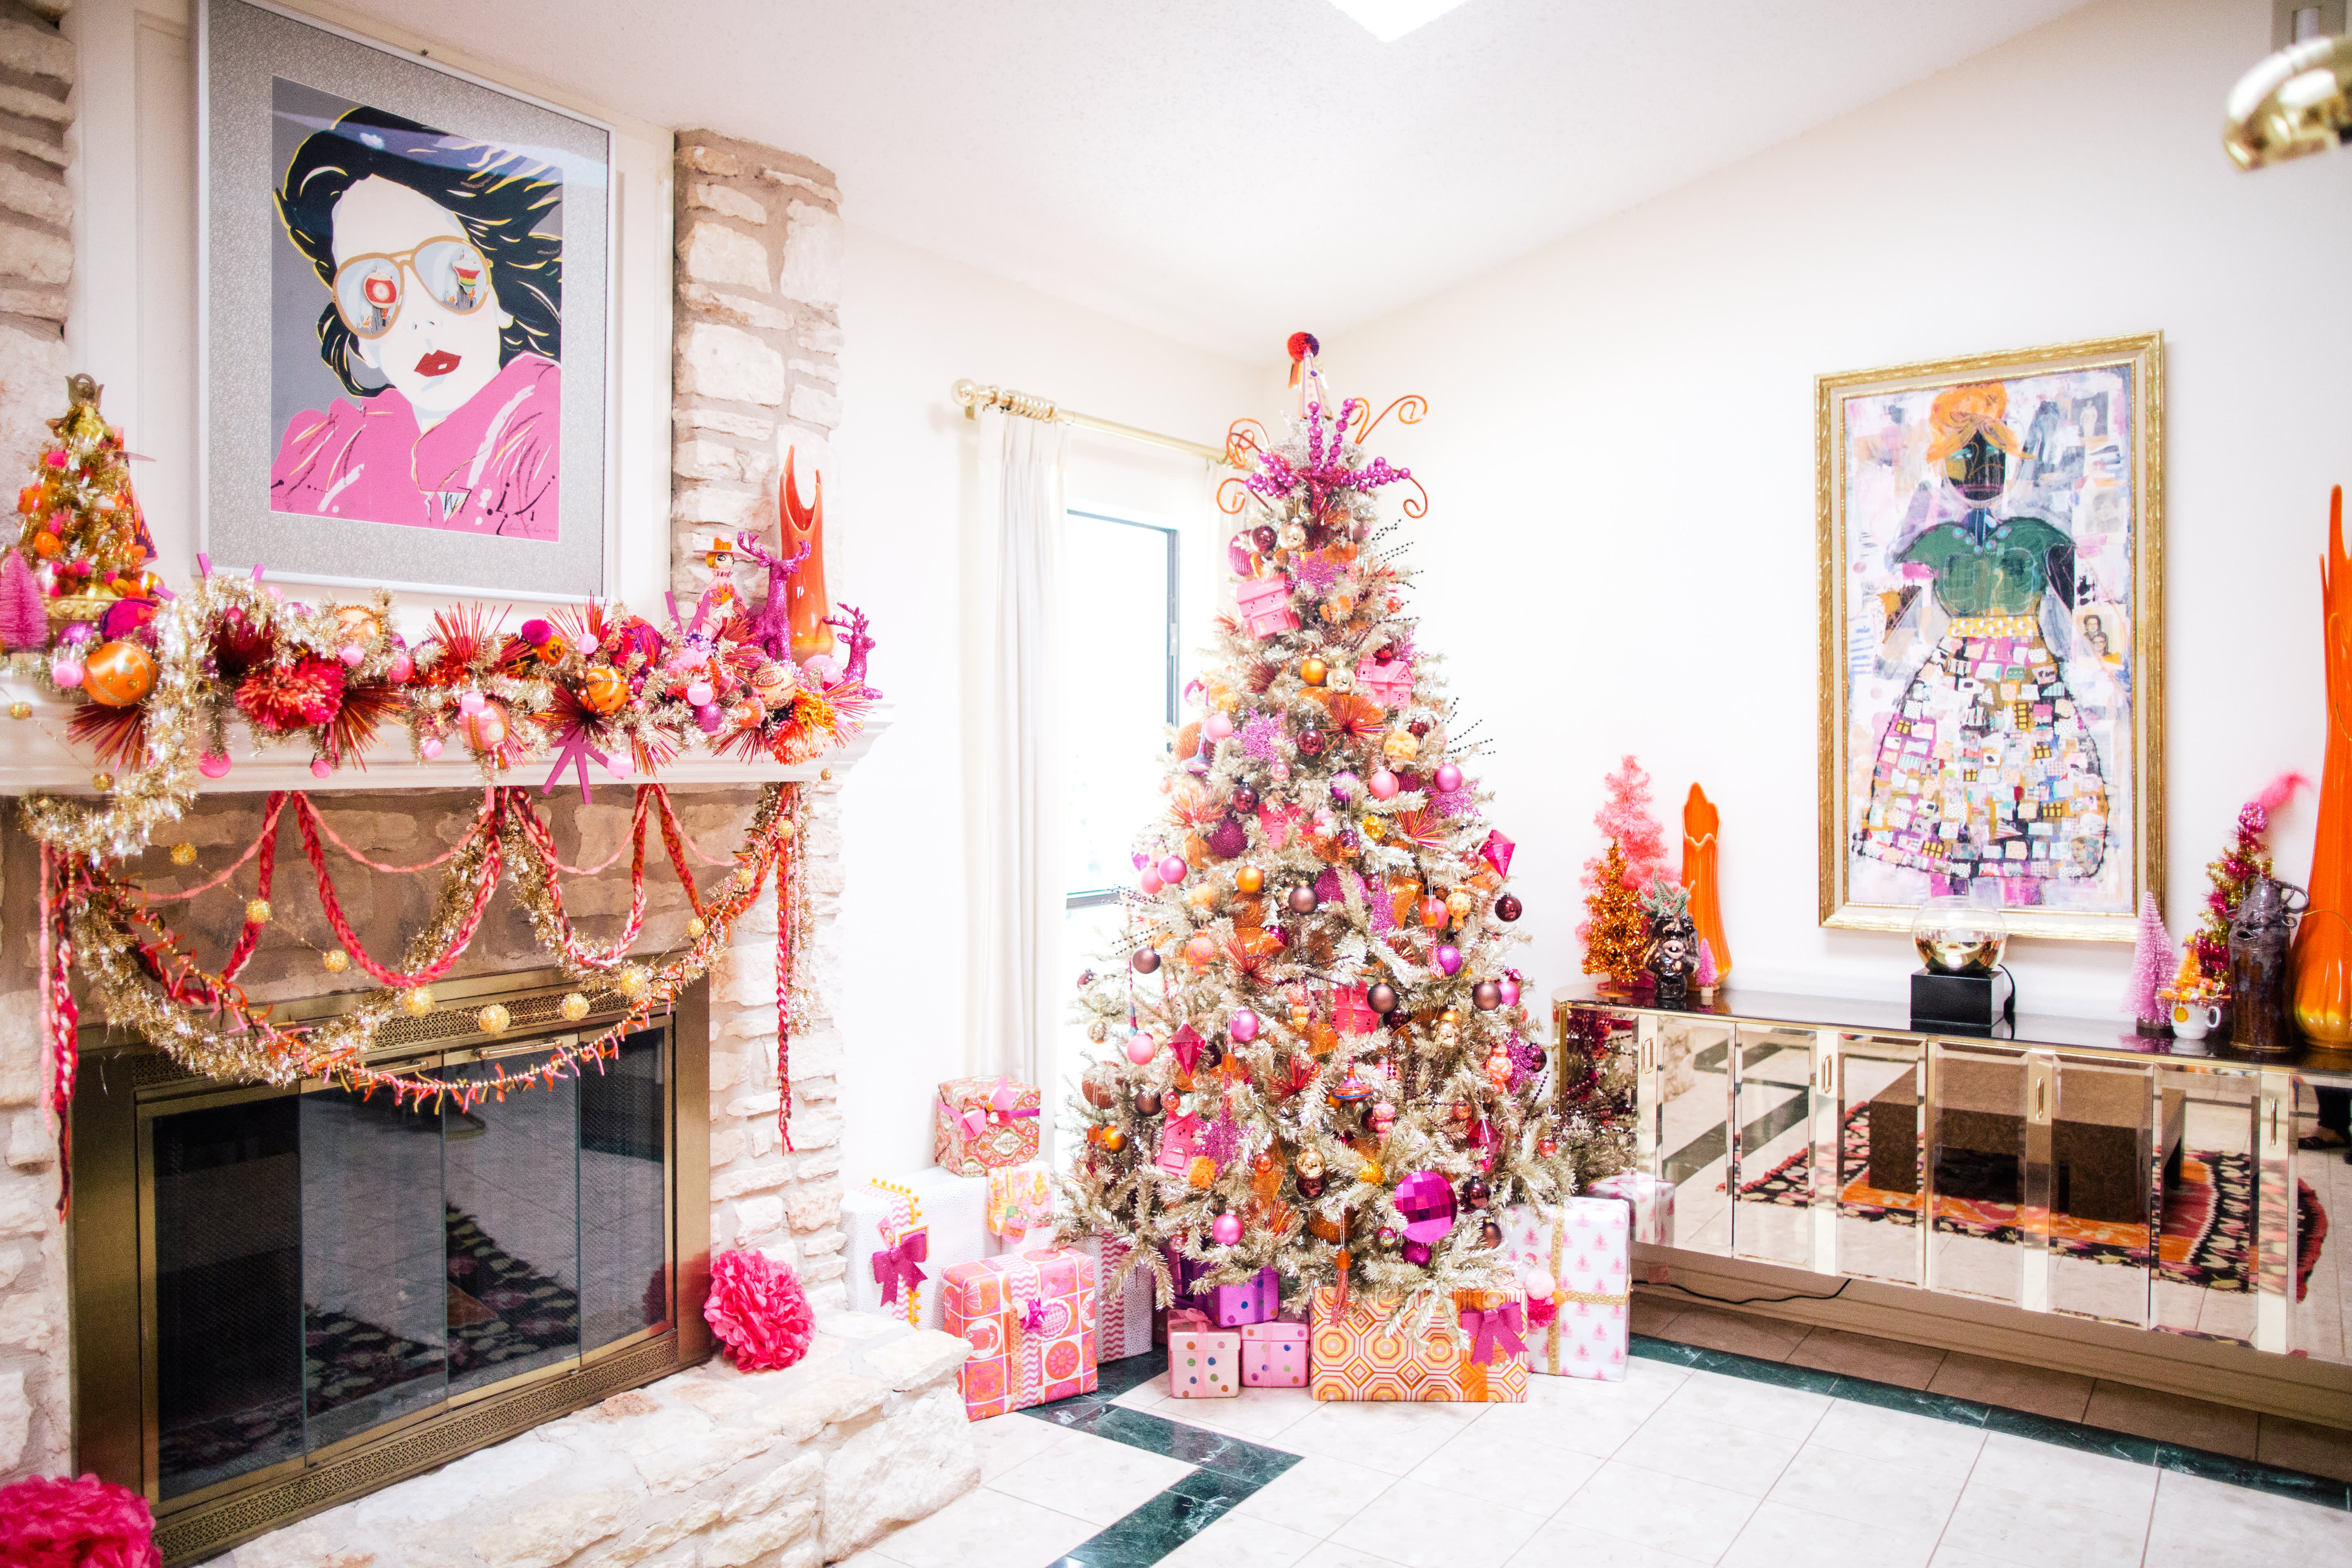 House Tour A Home With 100 Colorful Christmas Trees Apartment